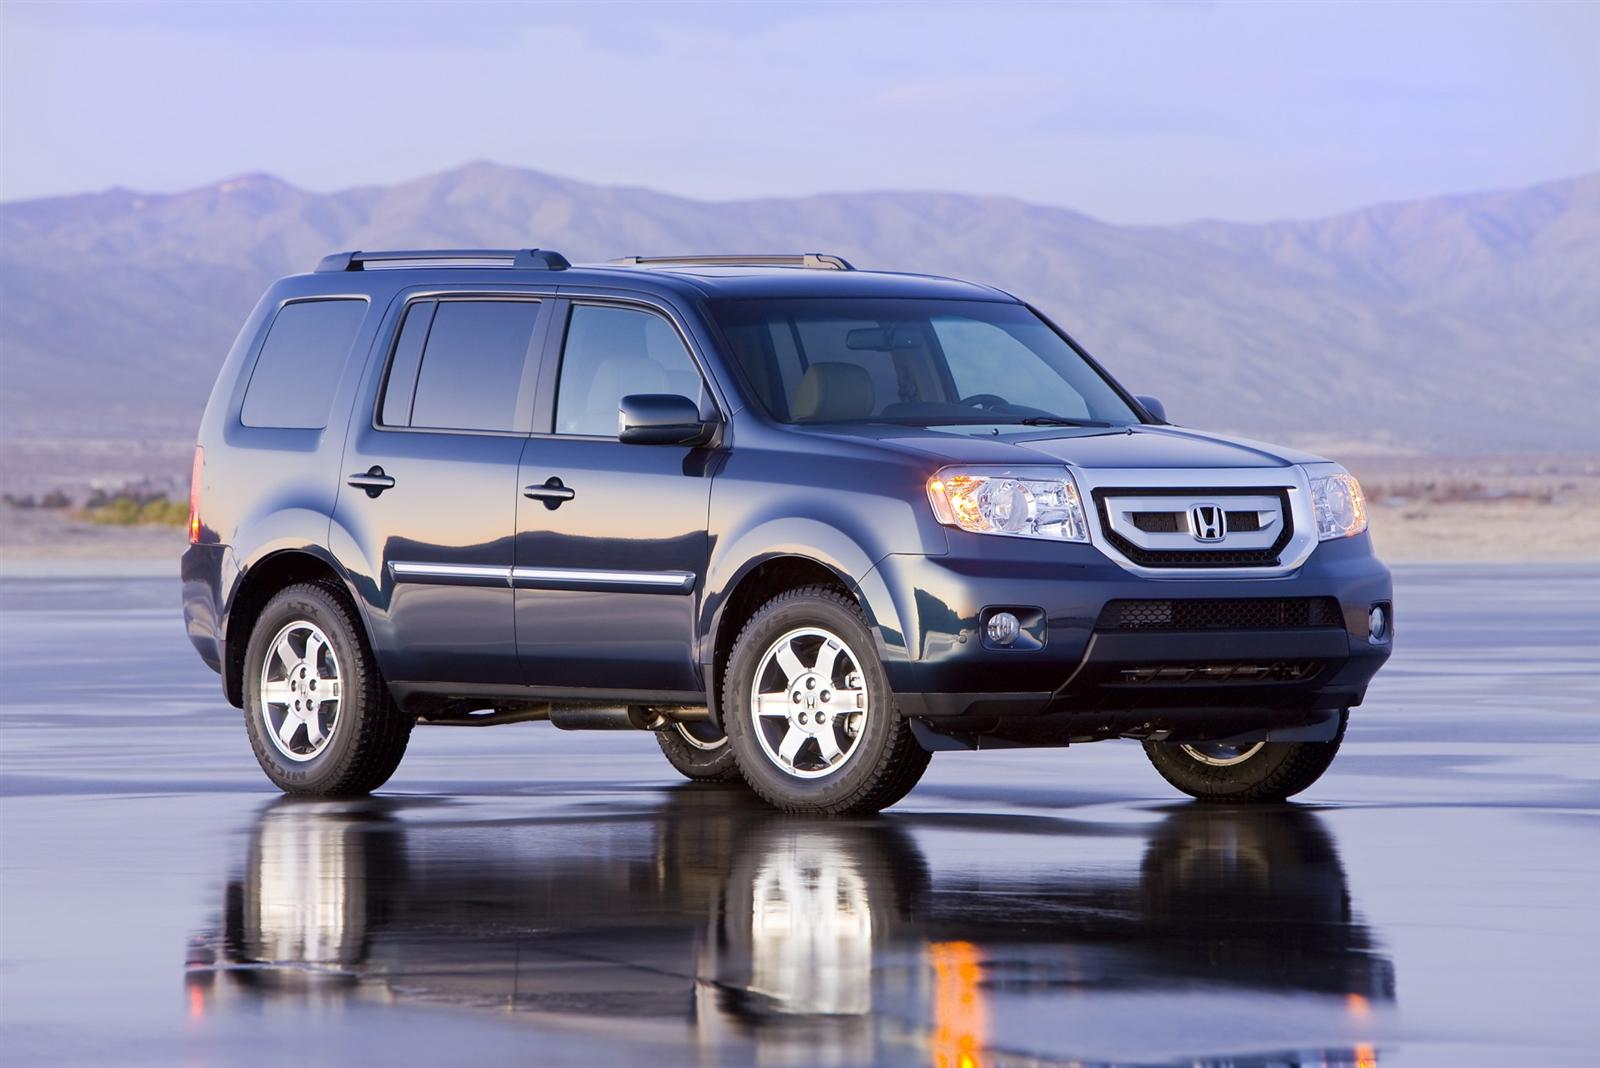 viewing honda pilot near are wallpaper grey in titled you mountains